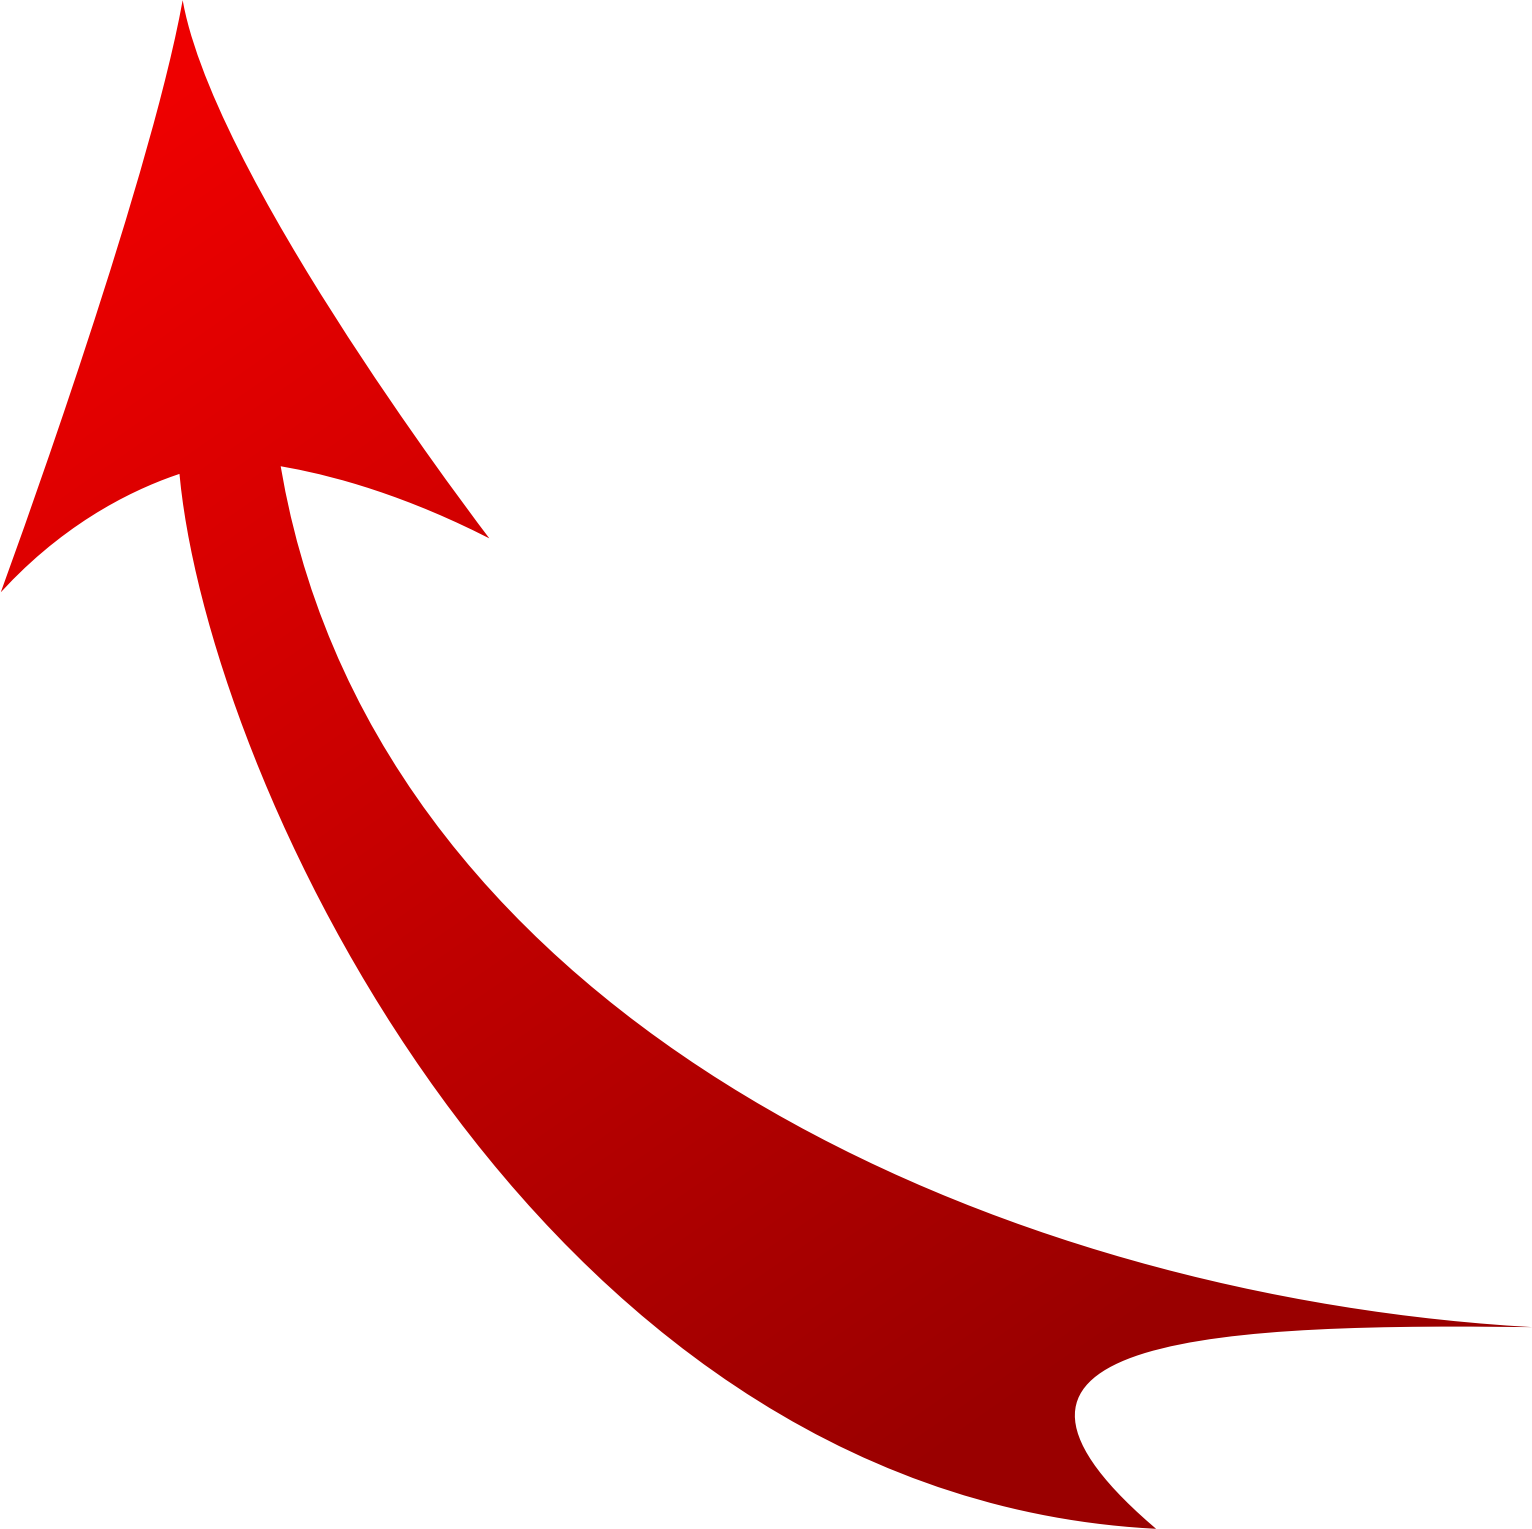 Vector curve maroon. Free curved arrow image